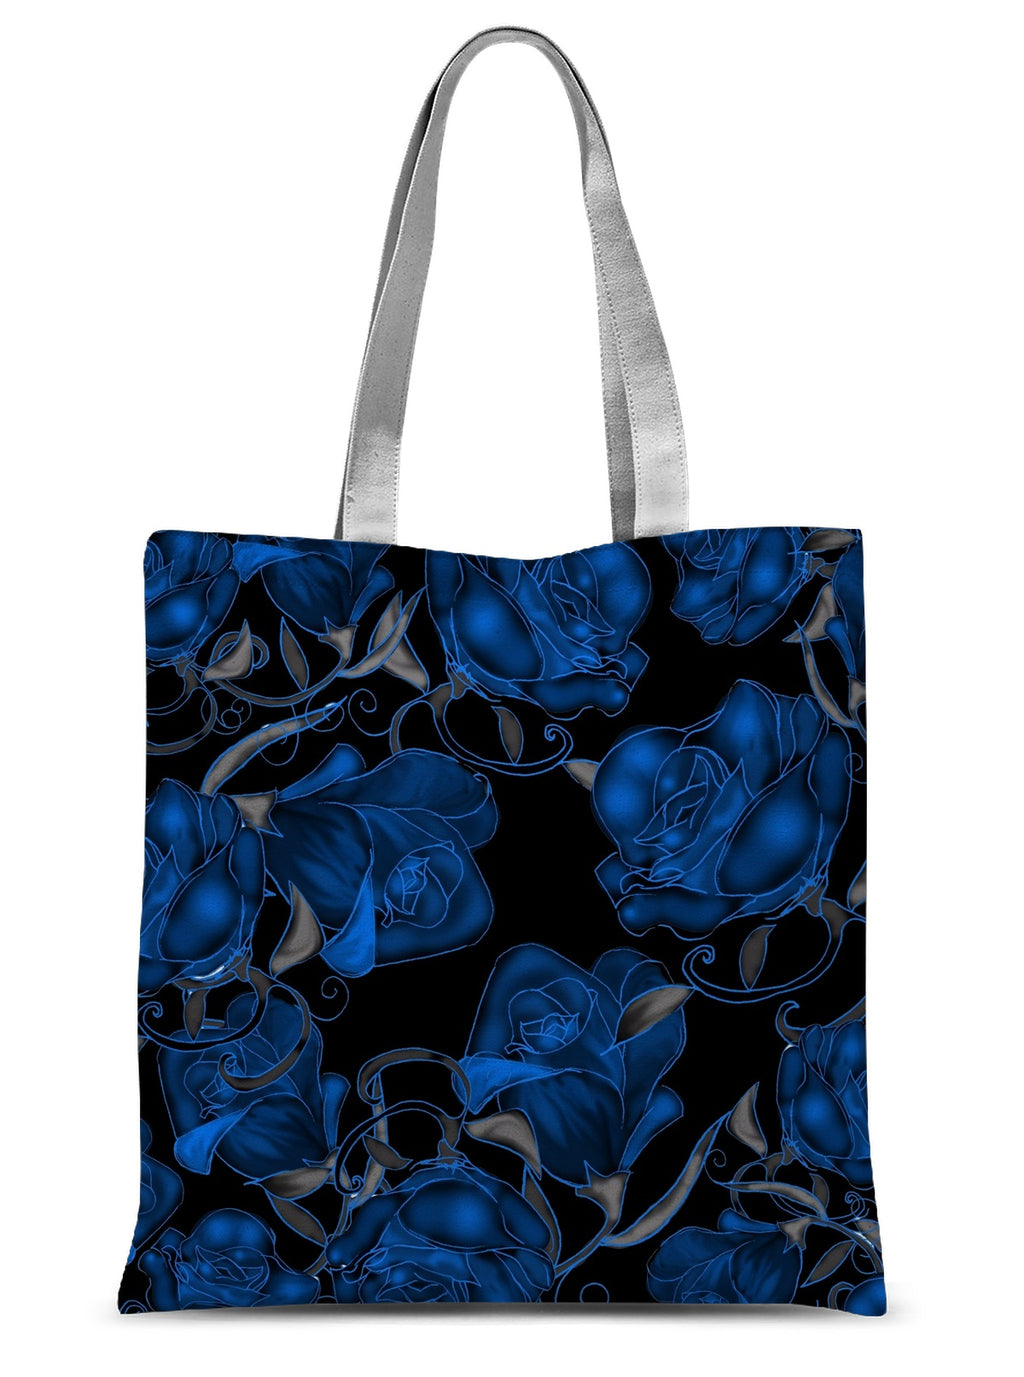 Blue Roses On Black Sublimation Tote Bag - expressive-flower-art-goods.myshopify.com